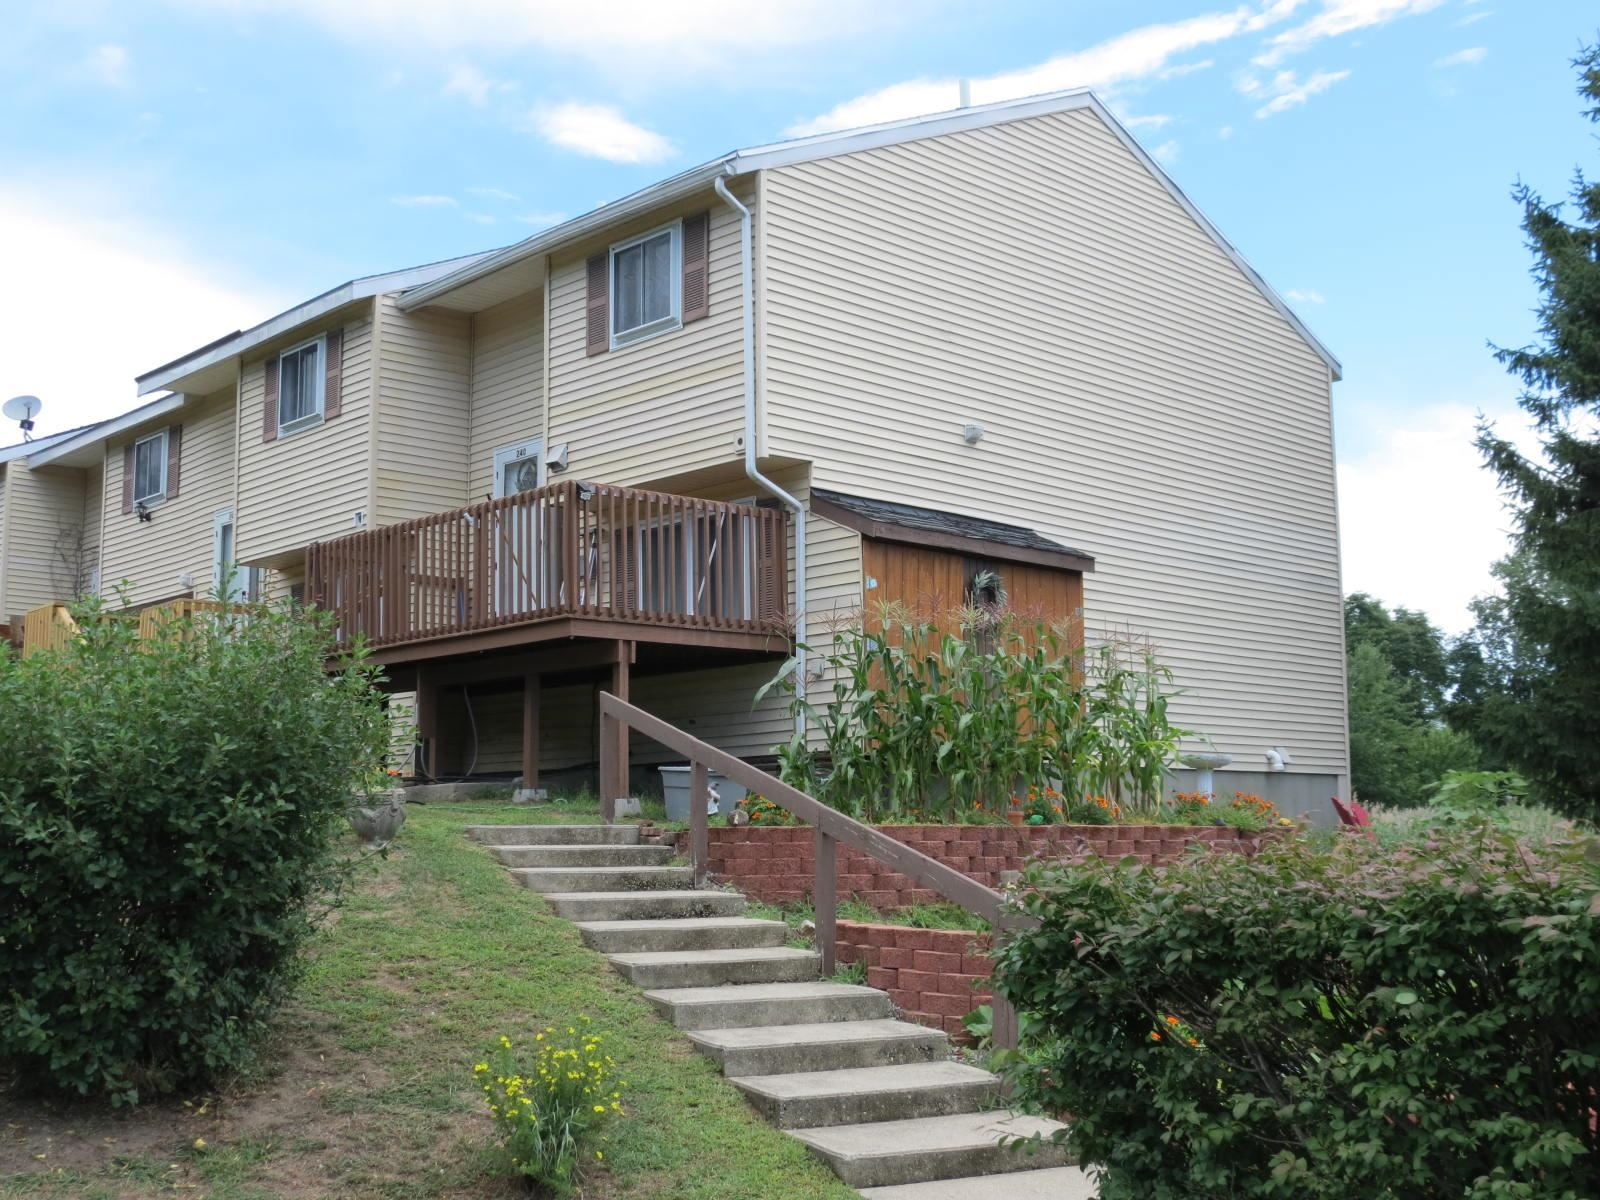 242 Old Cohas Avenue #2, Manchester, NH 03109 - MLS#: 4821621